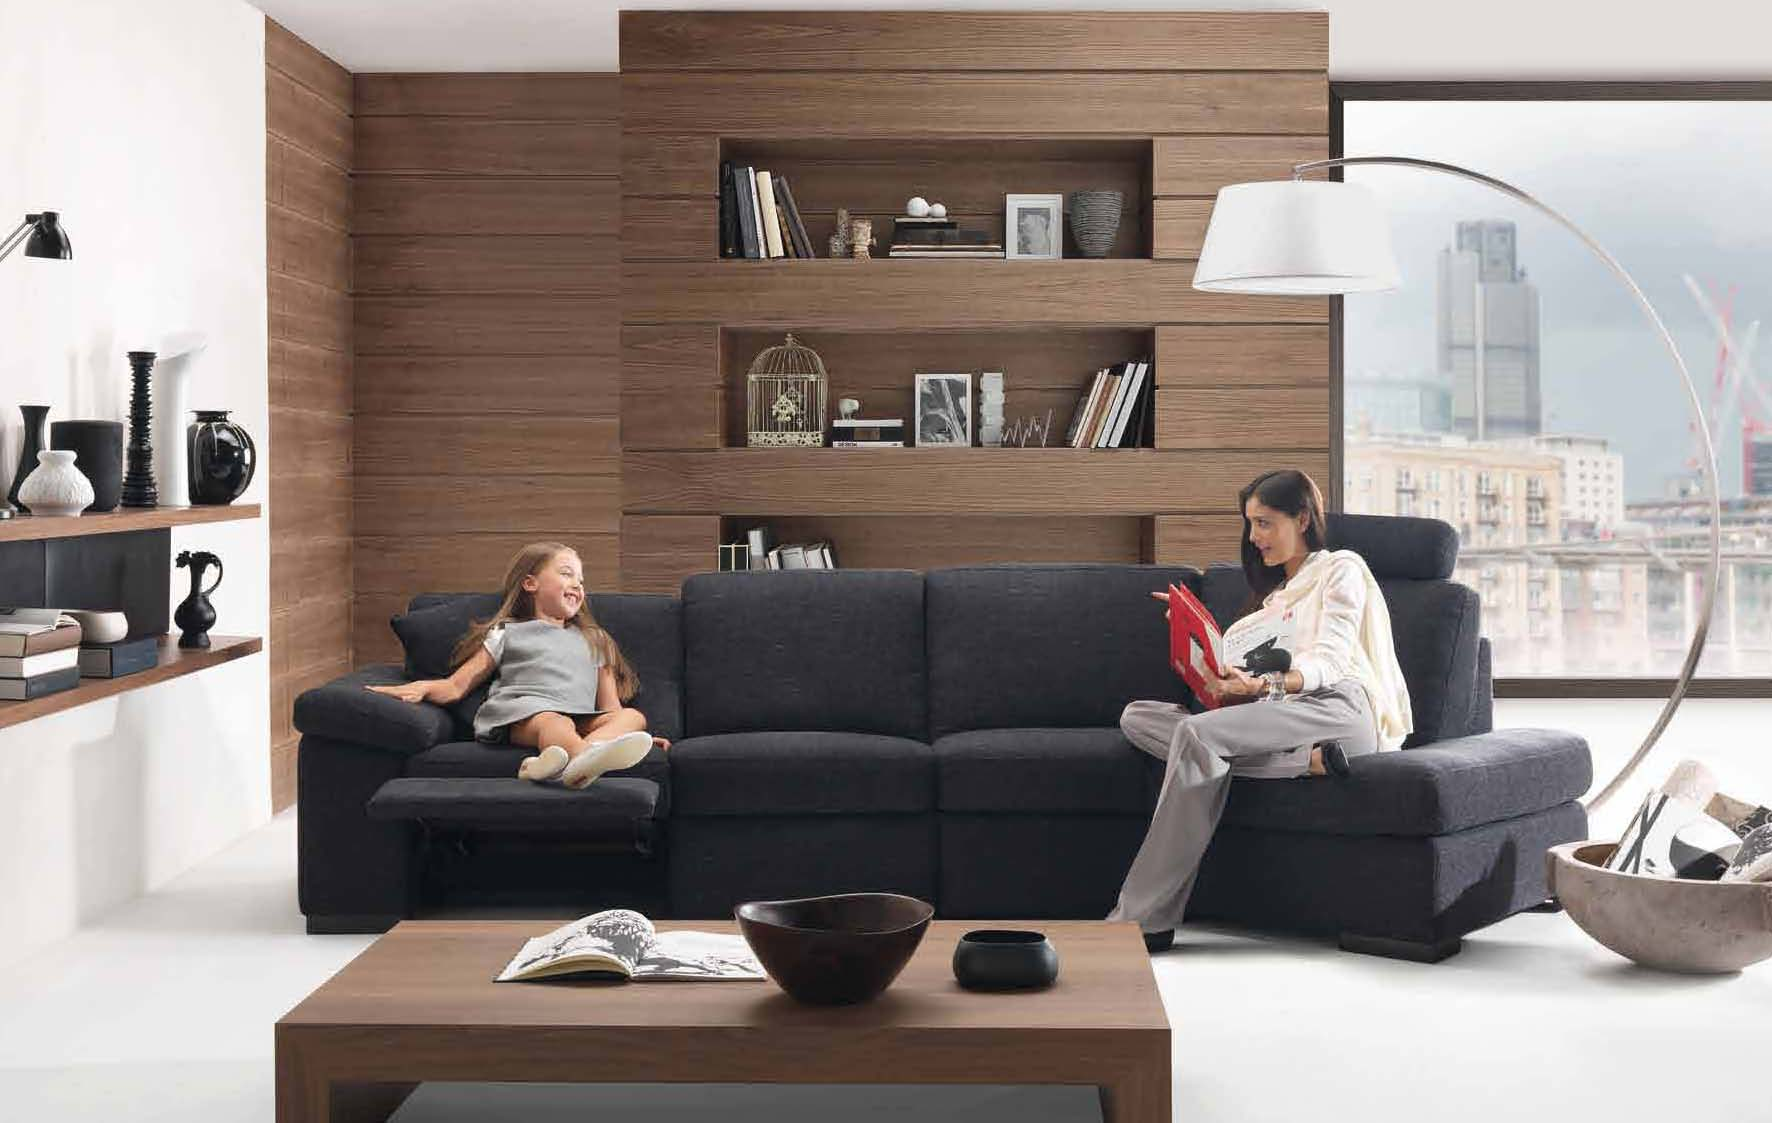 Living room styles 2010 by natuzzi for Living room modern ideas